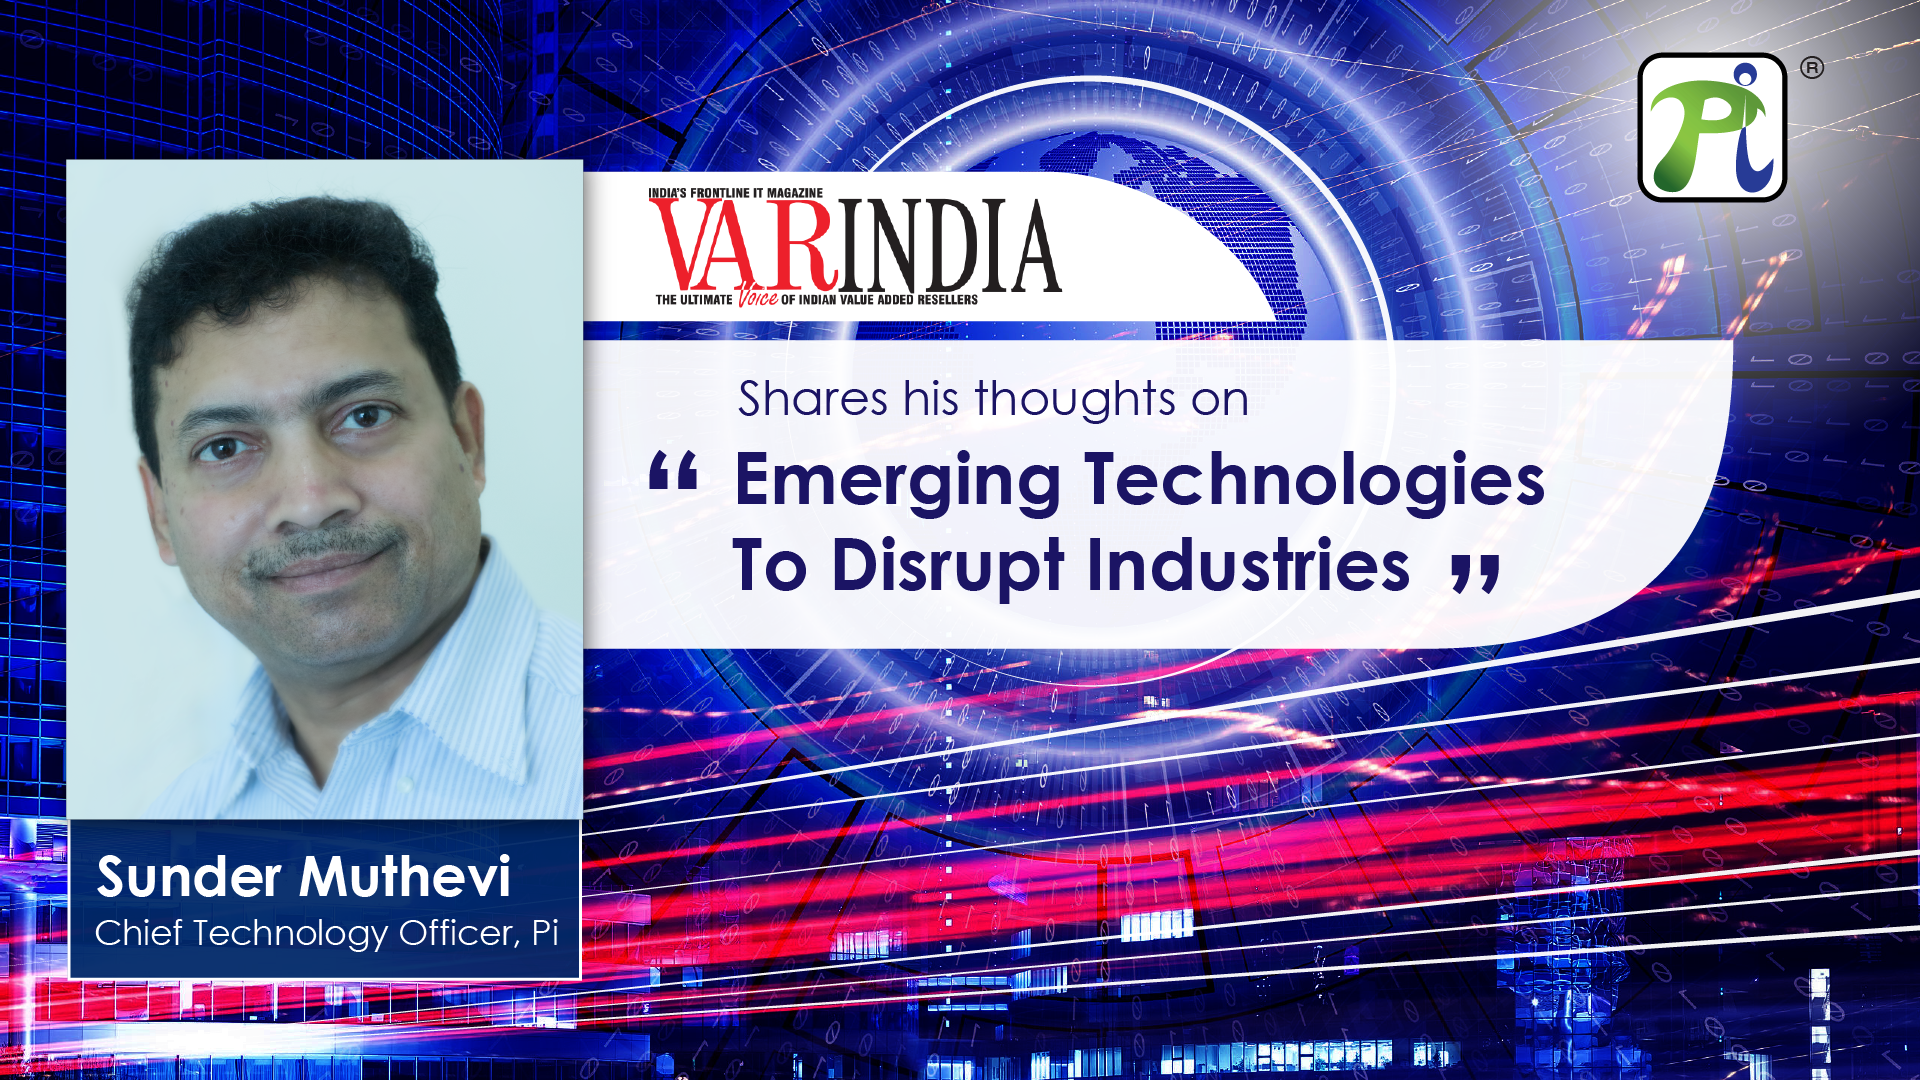 Sunder Muthevi - Speaking to VARINDIA on Emerging Technologies Disrupting Industries_FB